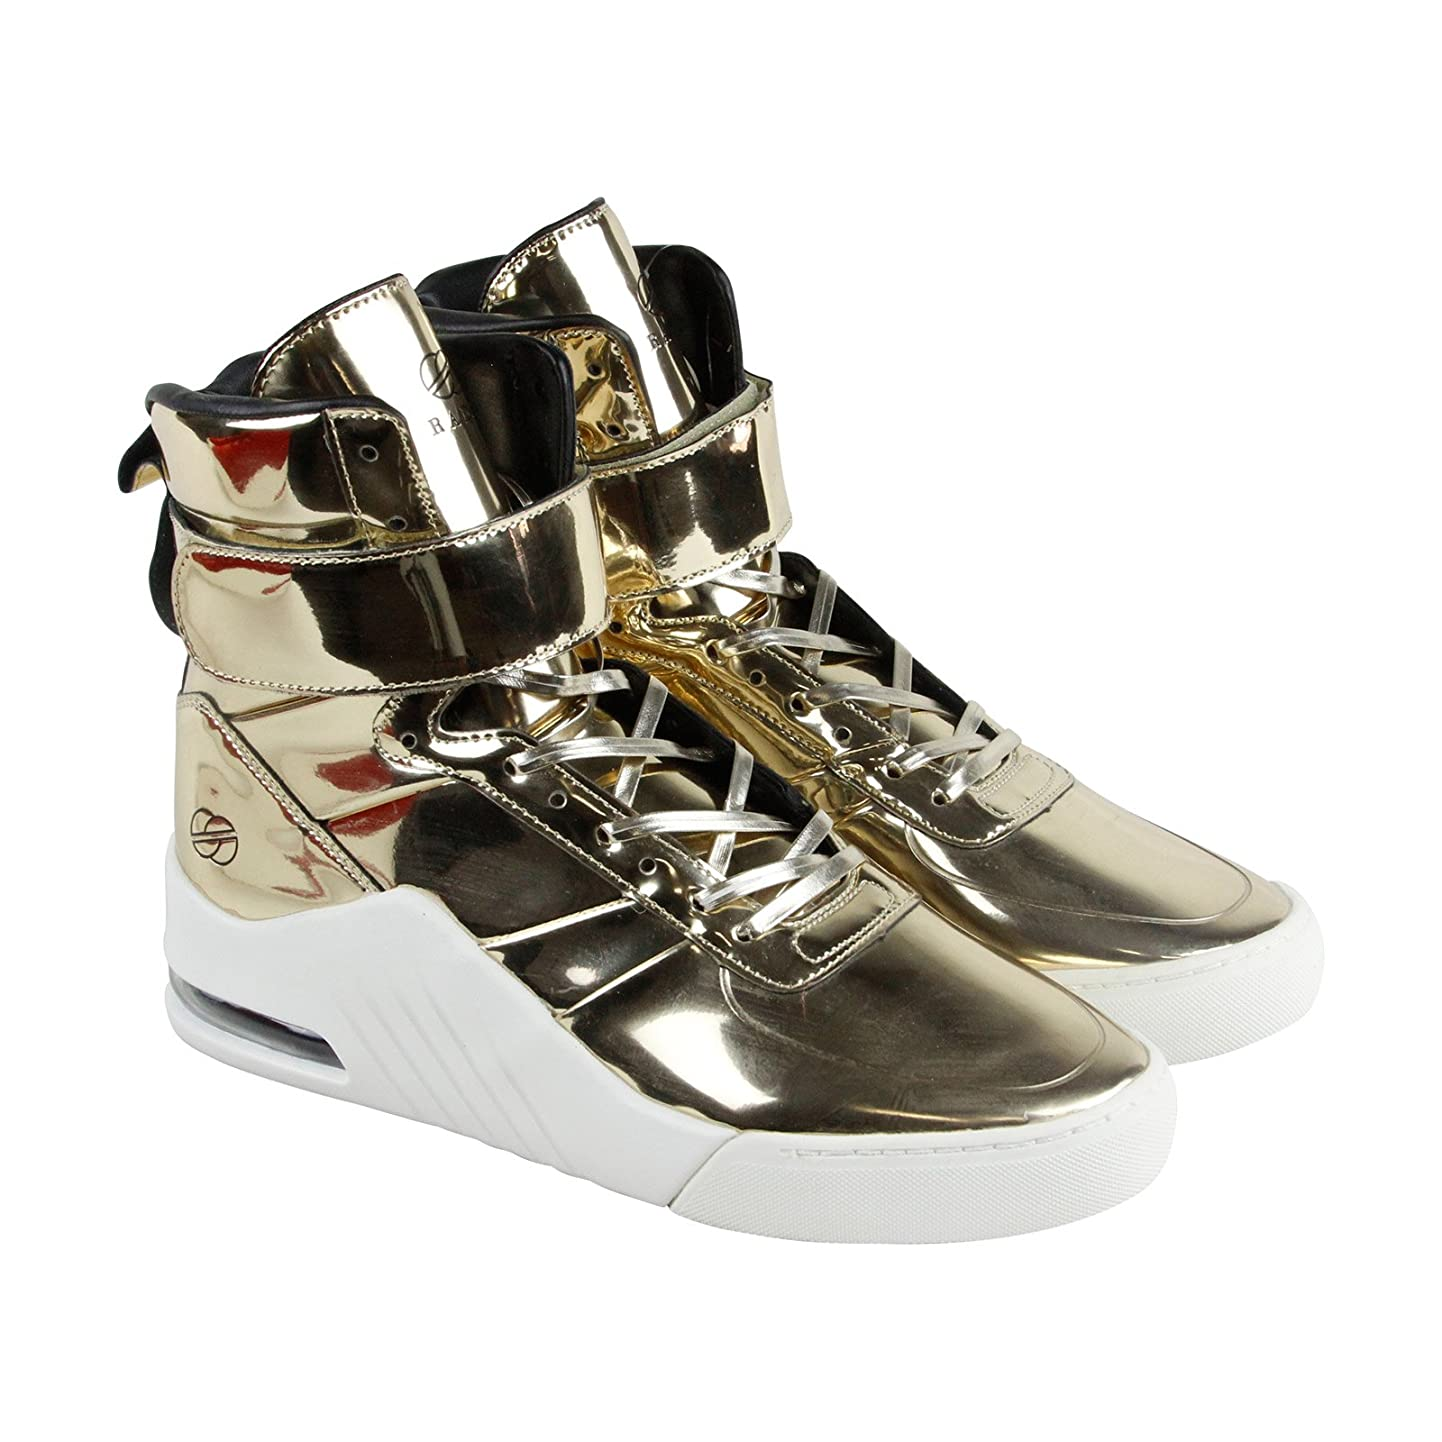 Radii Apex Mens Gold Patent Leather High Top Lace Up Sneakers Shoes ghncuobgrdf5